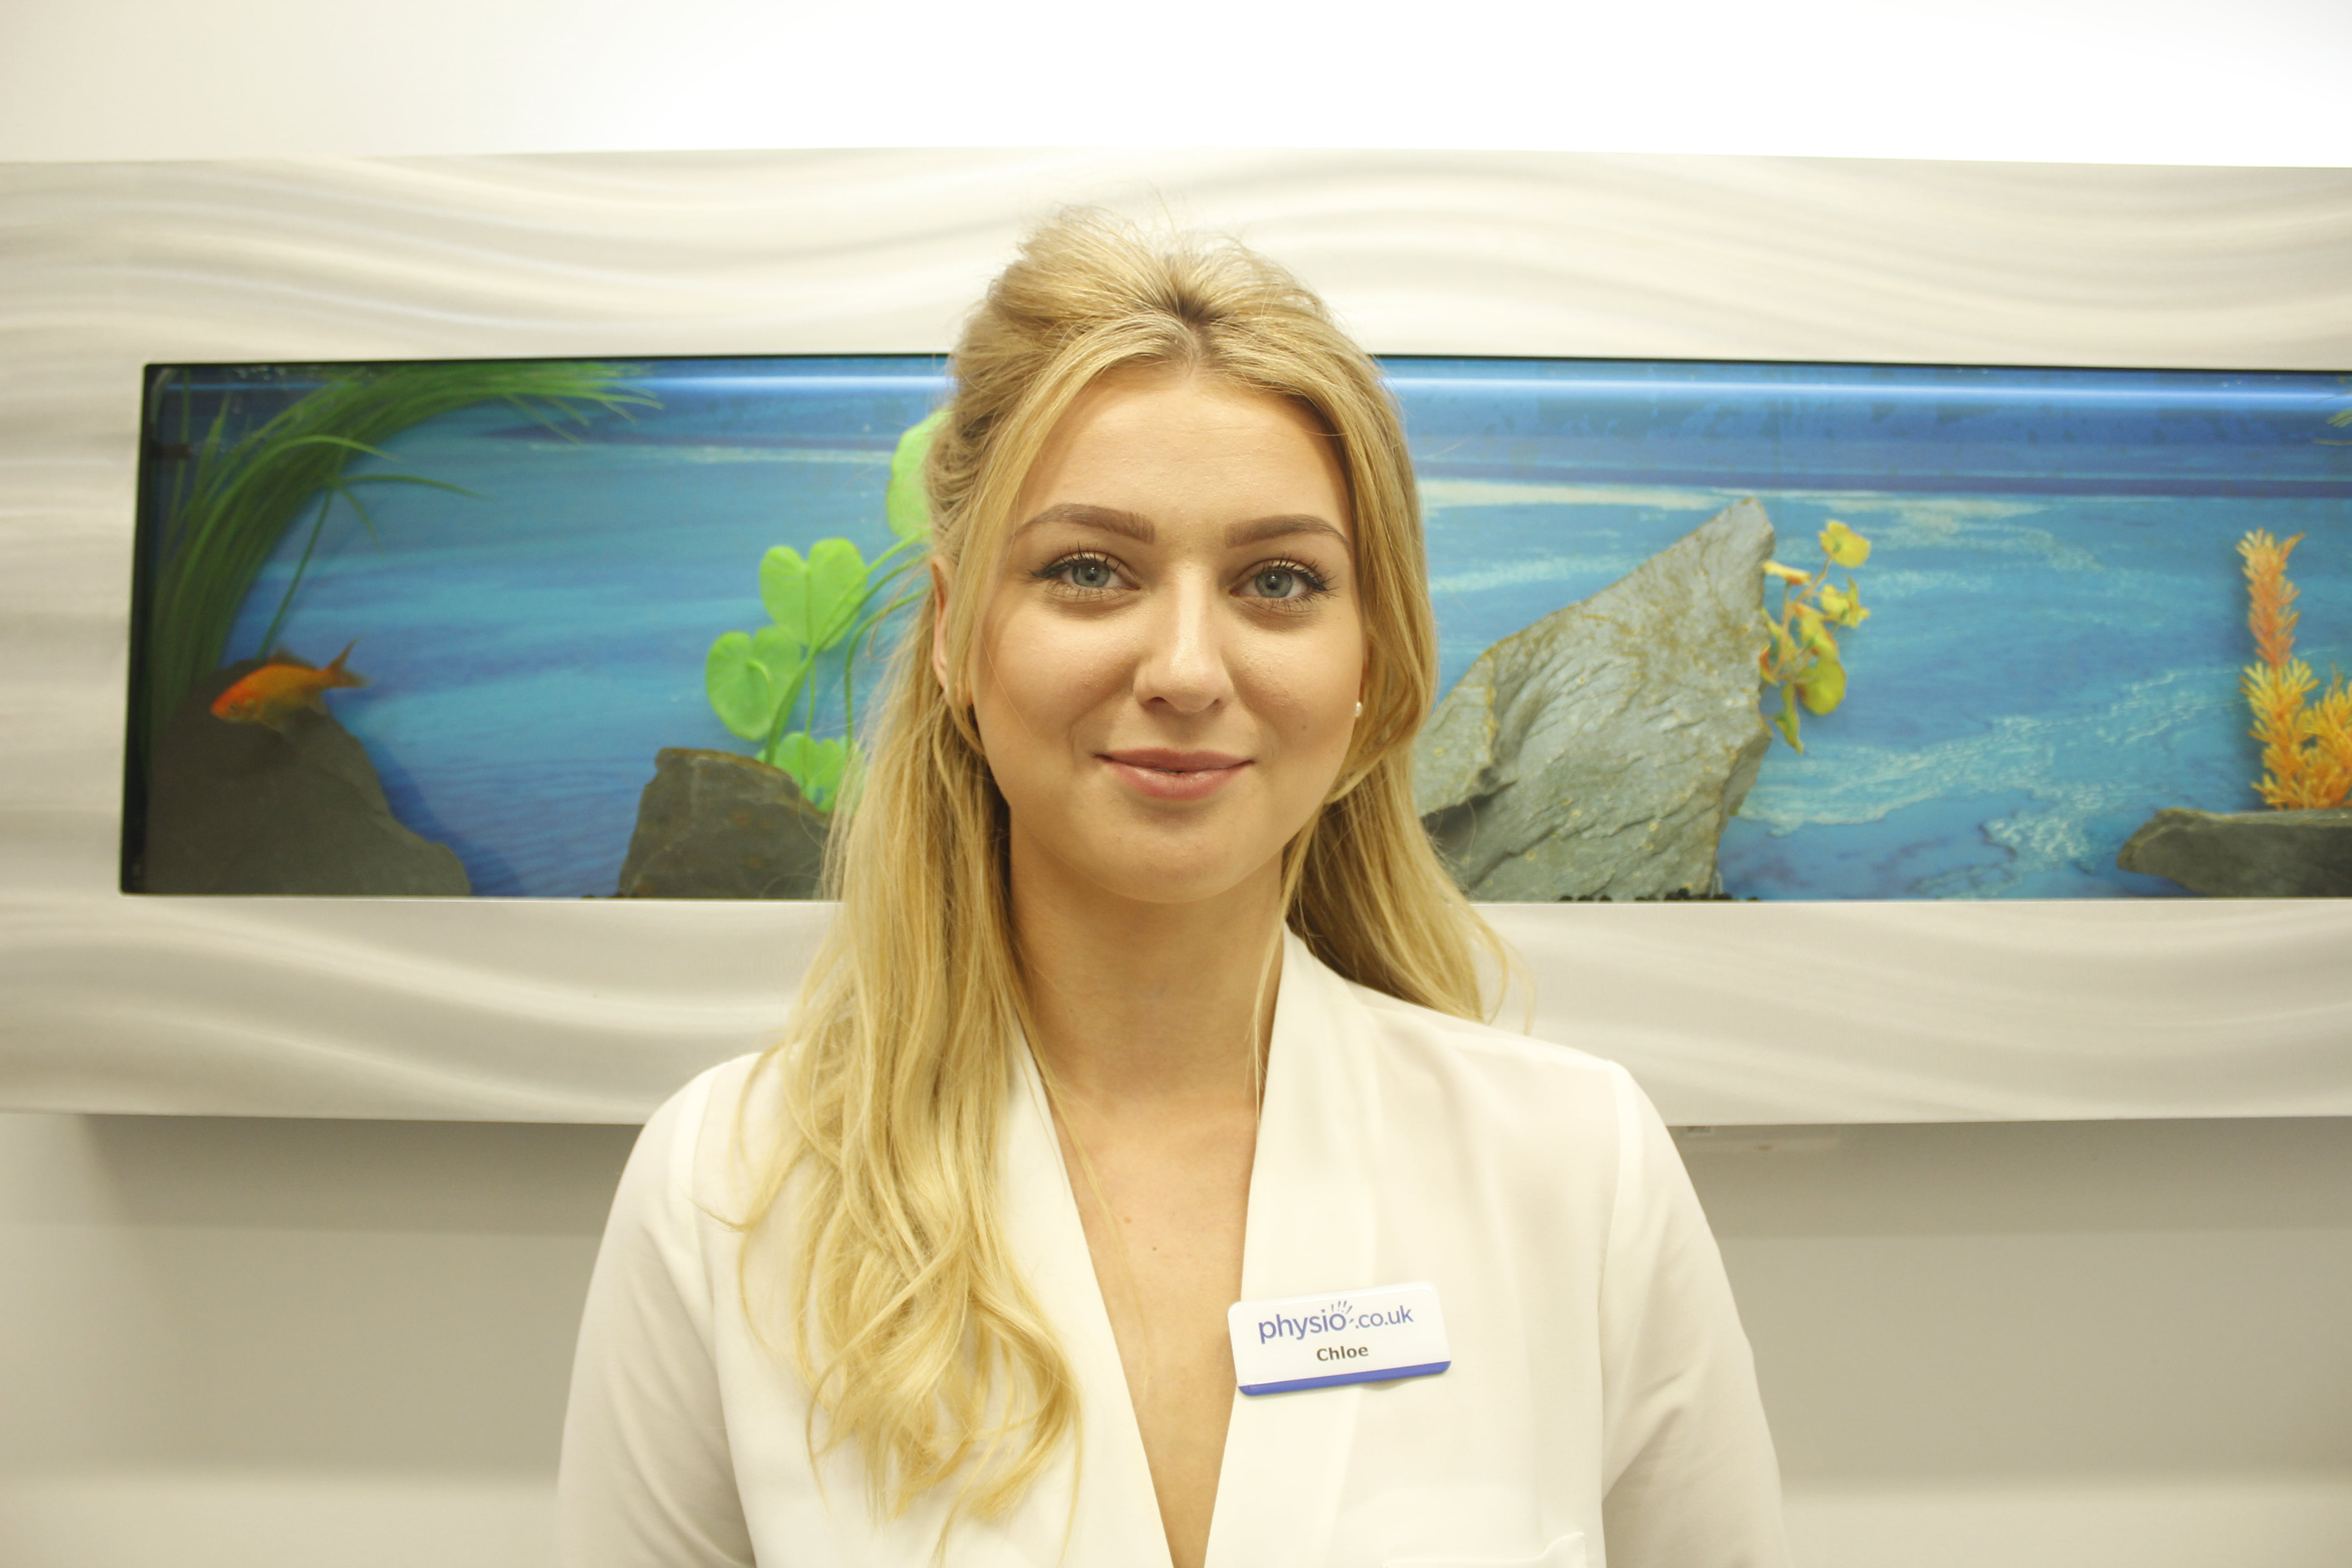 Tameside Physiotherapy Receptionist smiling